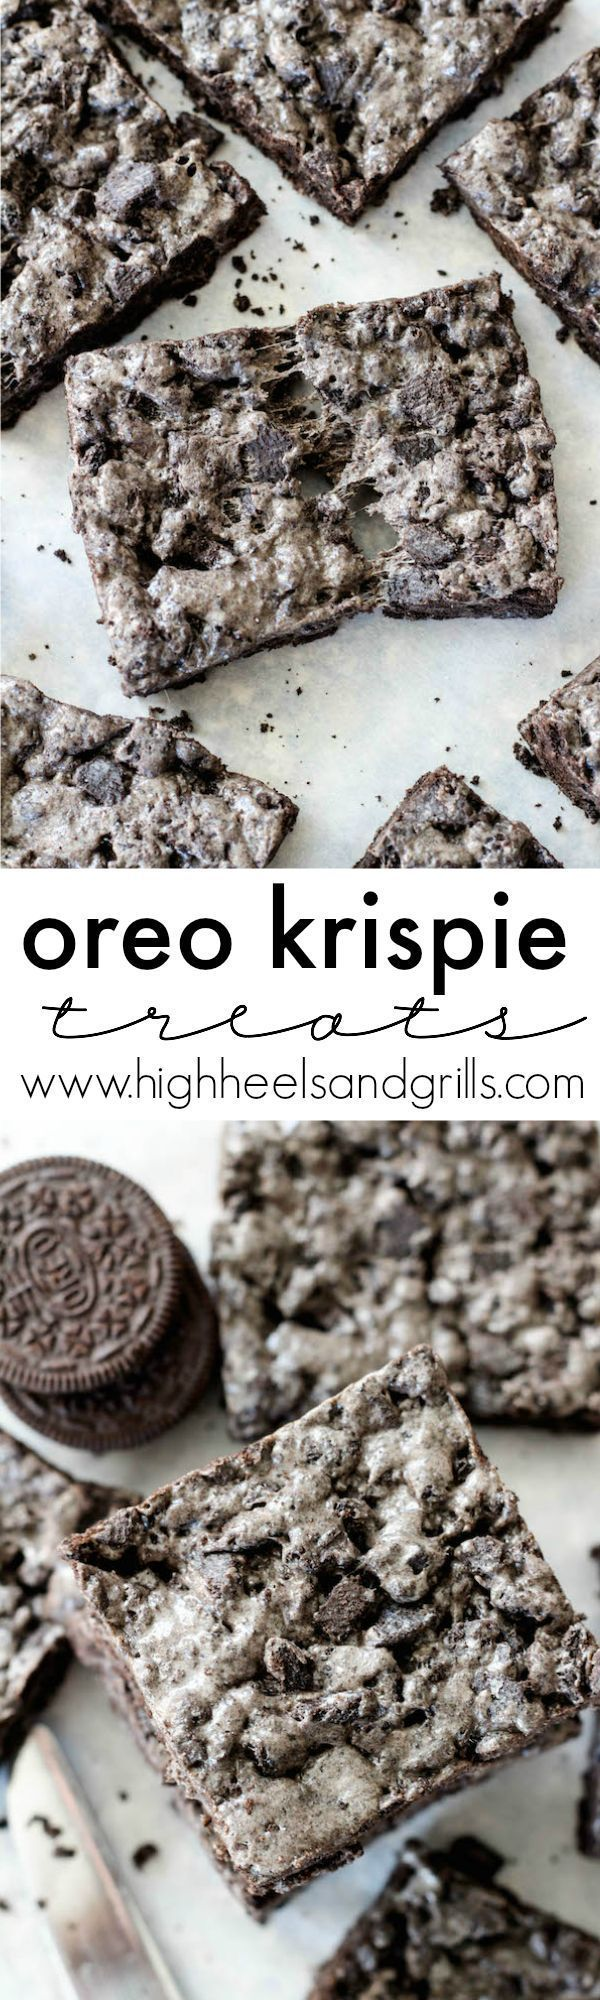 Photo of Oreo Krispie Treats